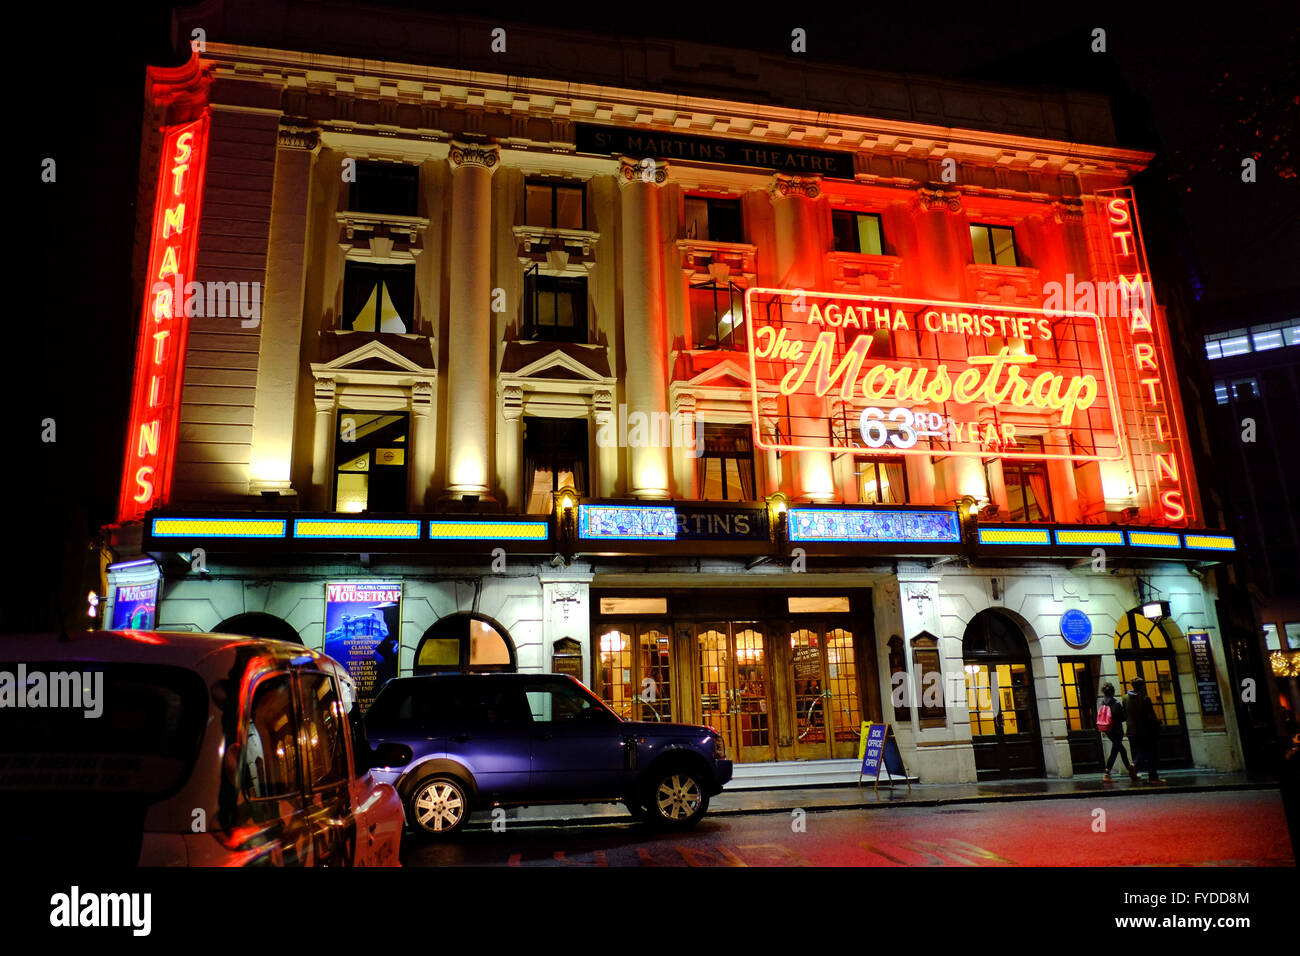 St Martins Theater showing Agatha Christies 'The Mousetrap' in London - Stock Image